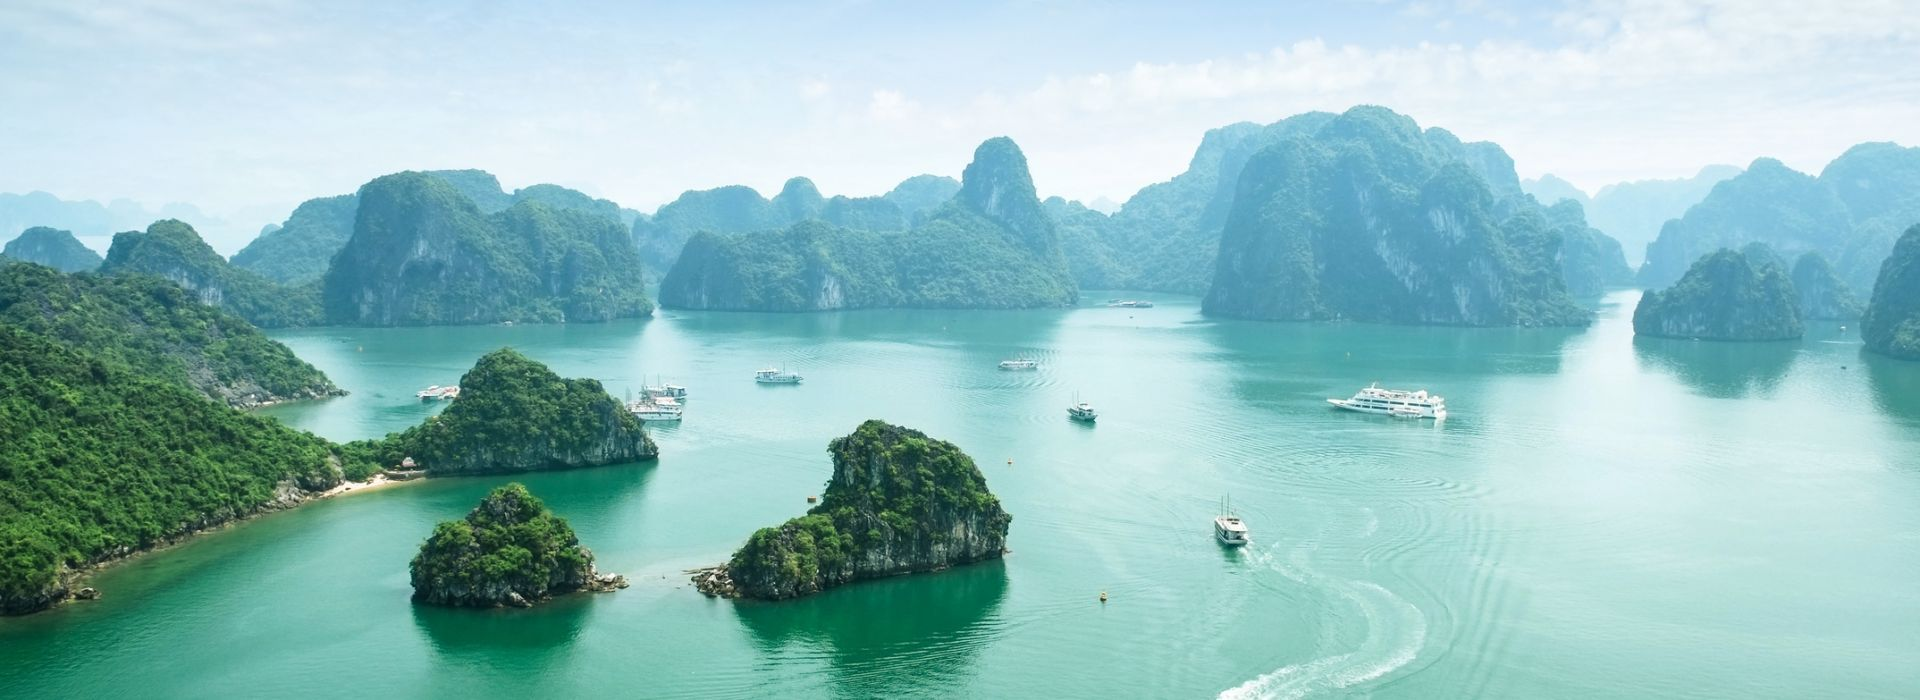 Boat tours, water sports and marine wildlife in Vietnam